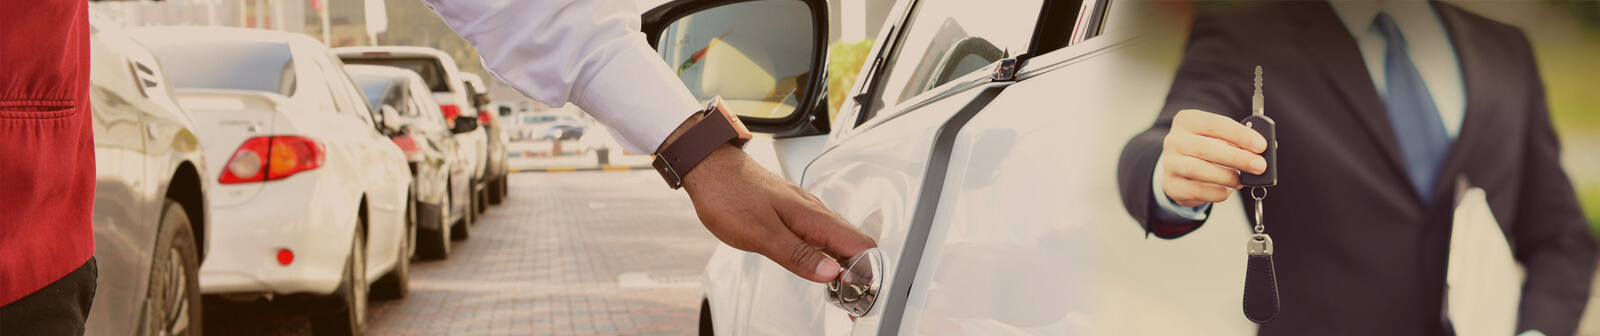 Valet Parking Service Providers in Delhi